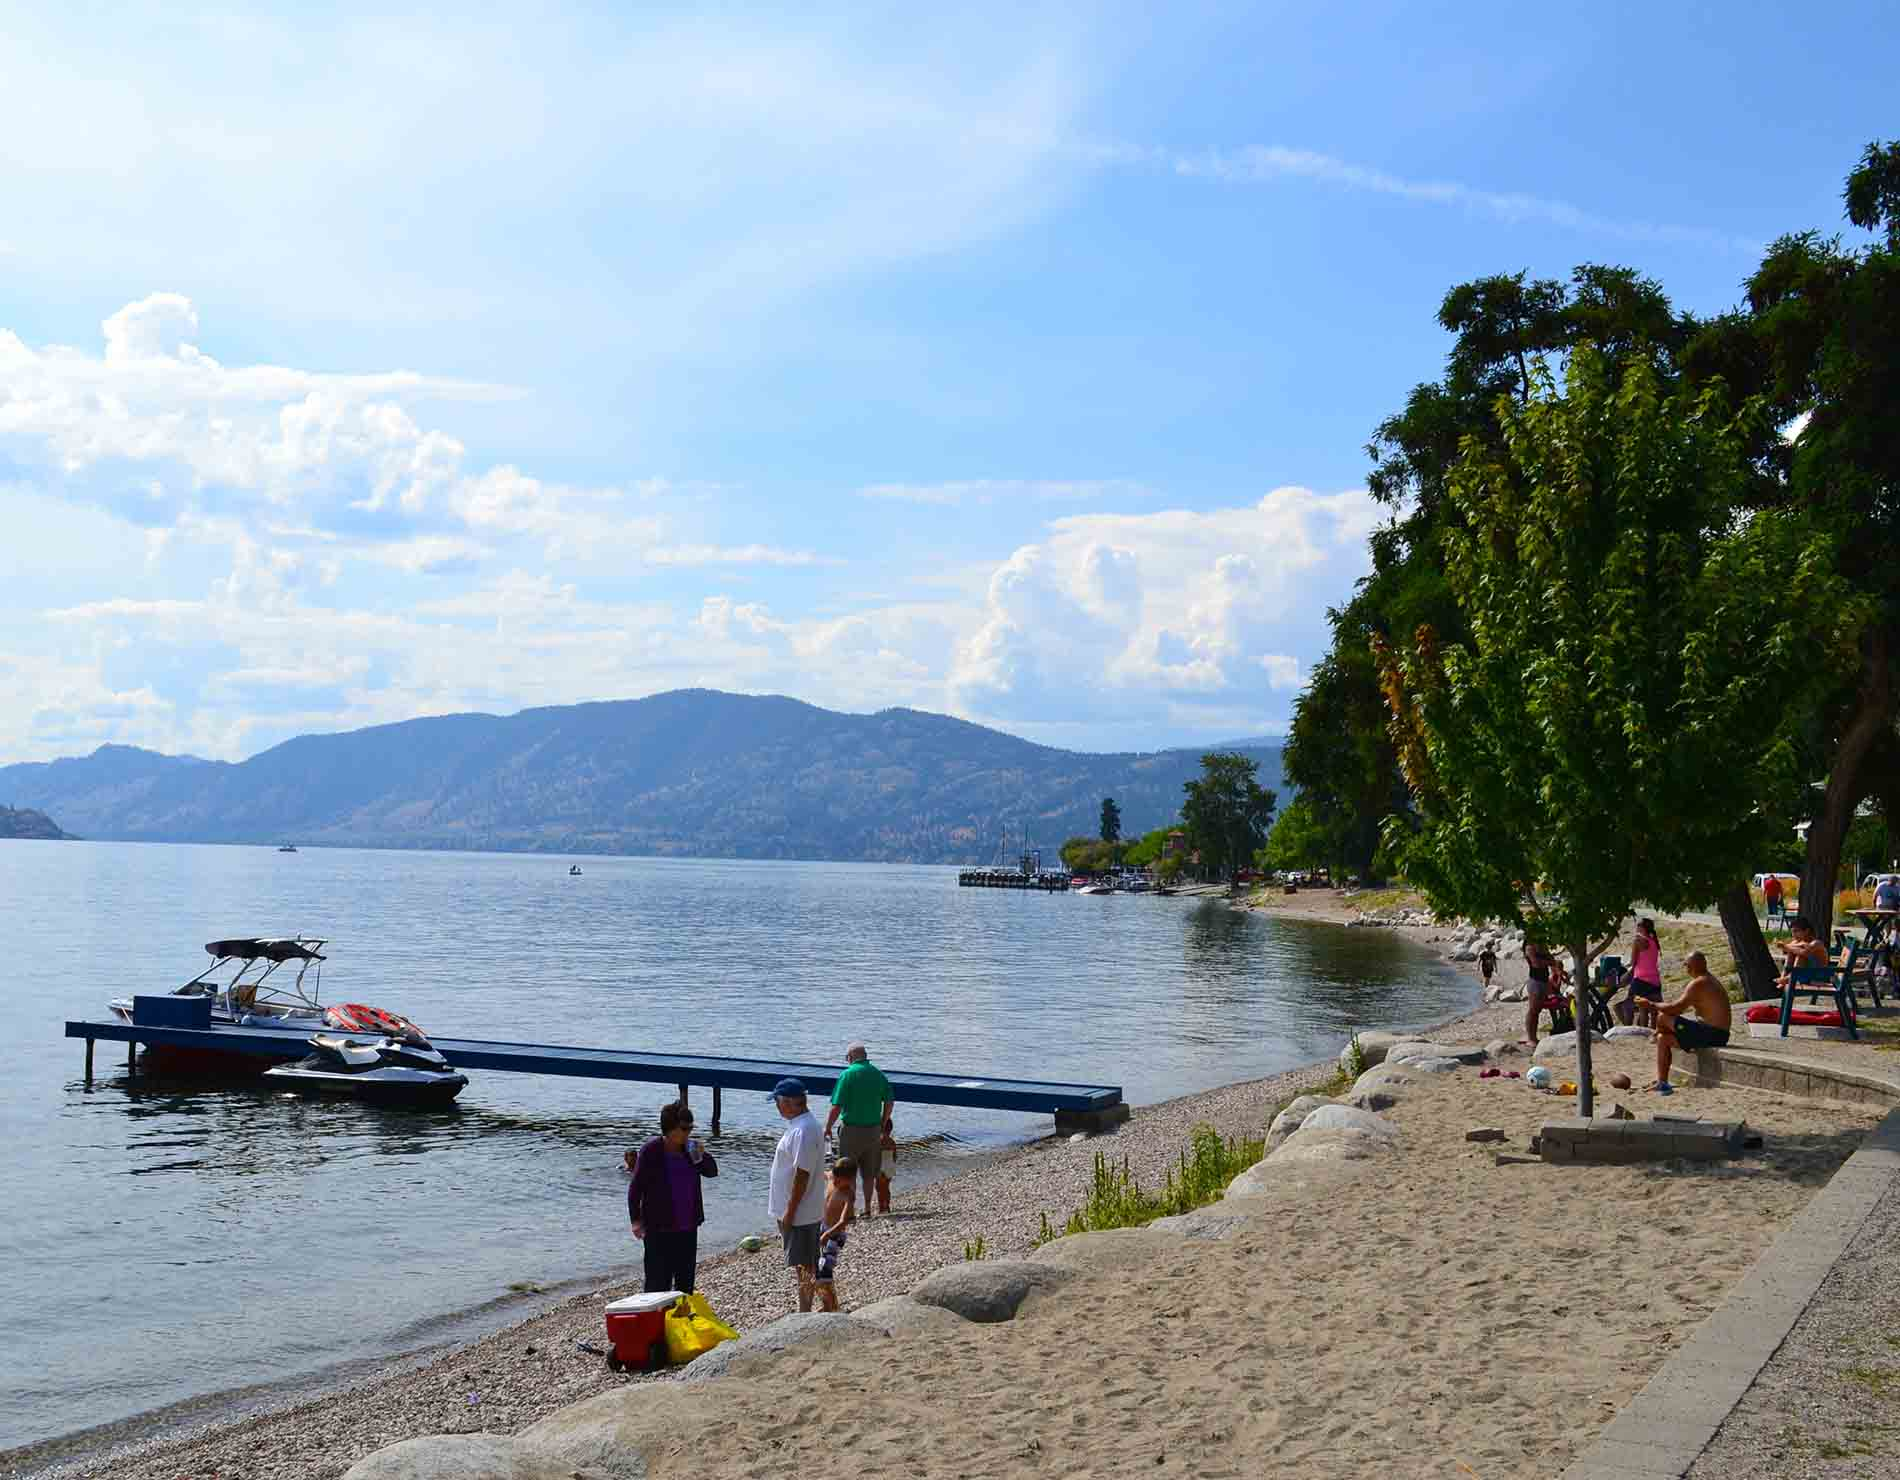 Beach in Peachland on Okanagan Lake